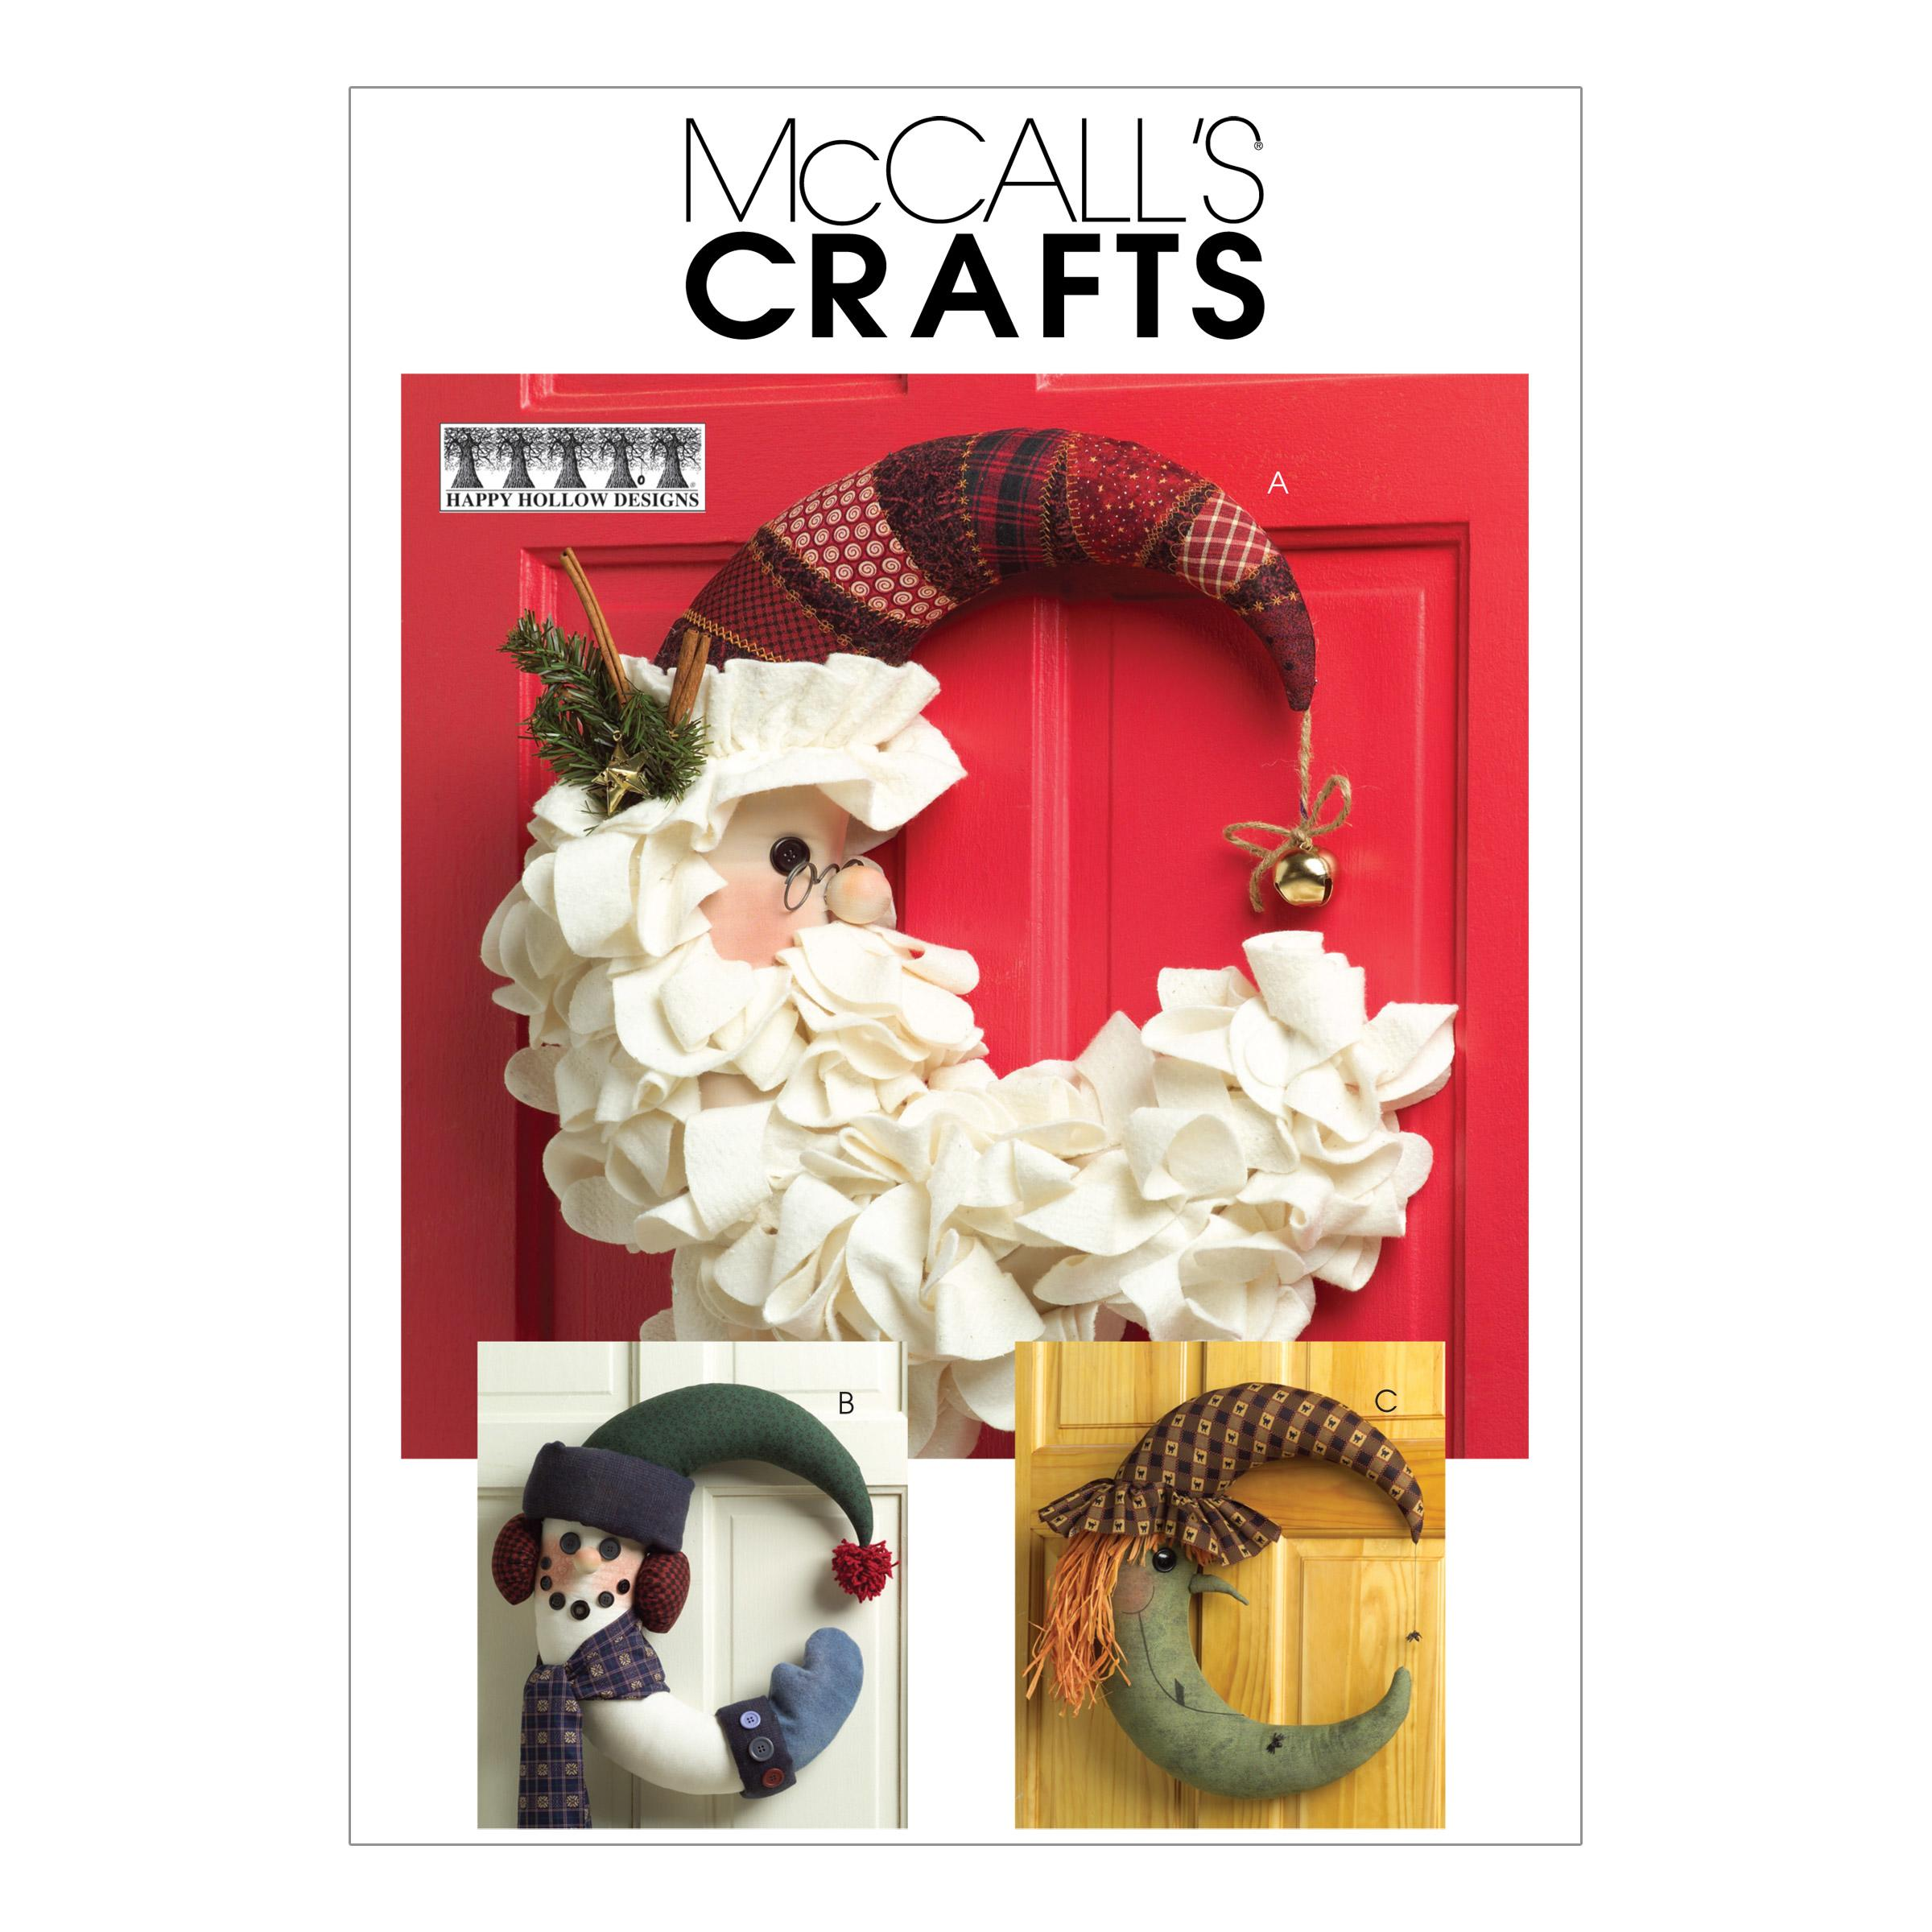 McCalls M5205 Crafts/Dolls/Pets, Seasonal/Holiday